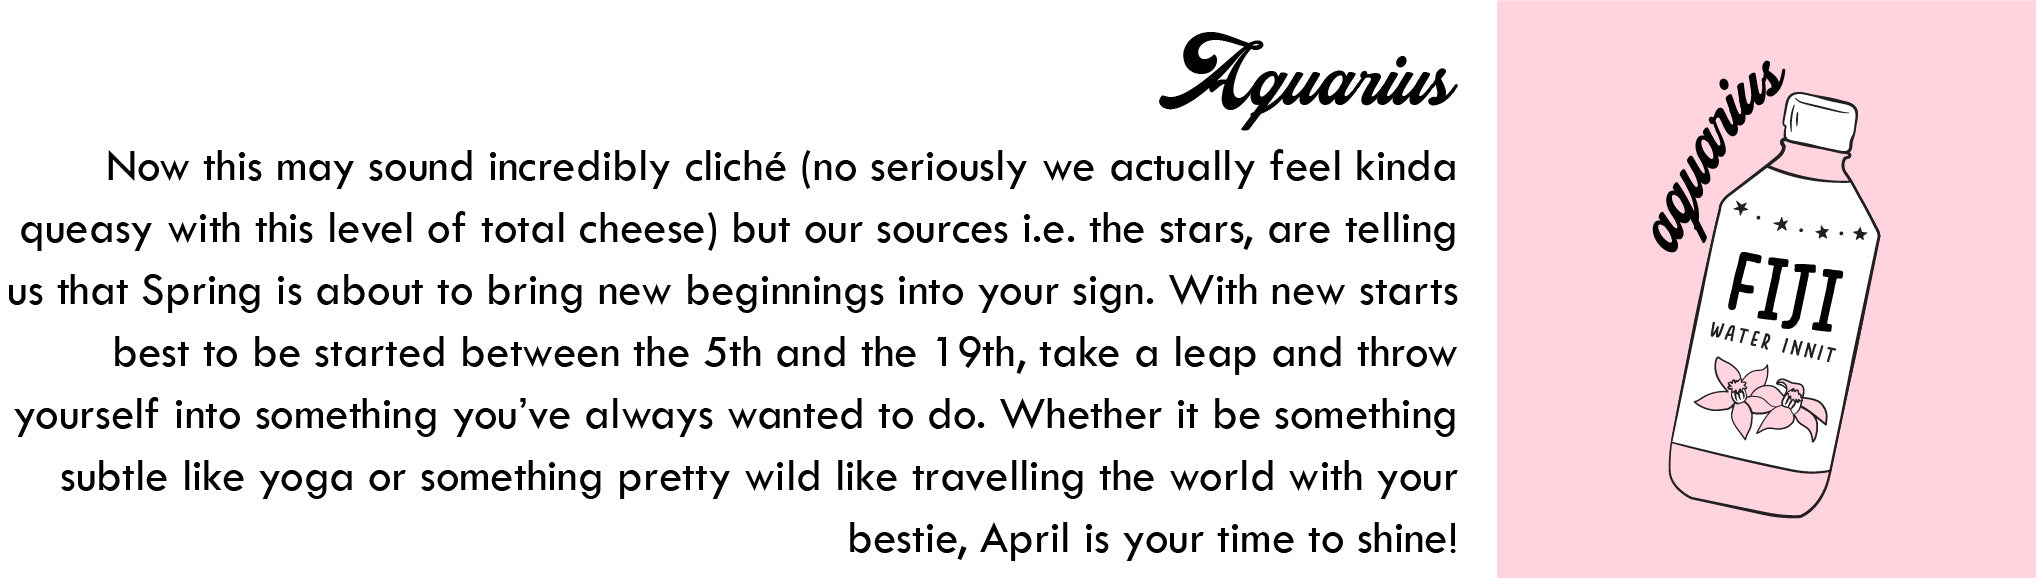 Aquarius April Horoscope | Blog | Skinnydip London